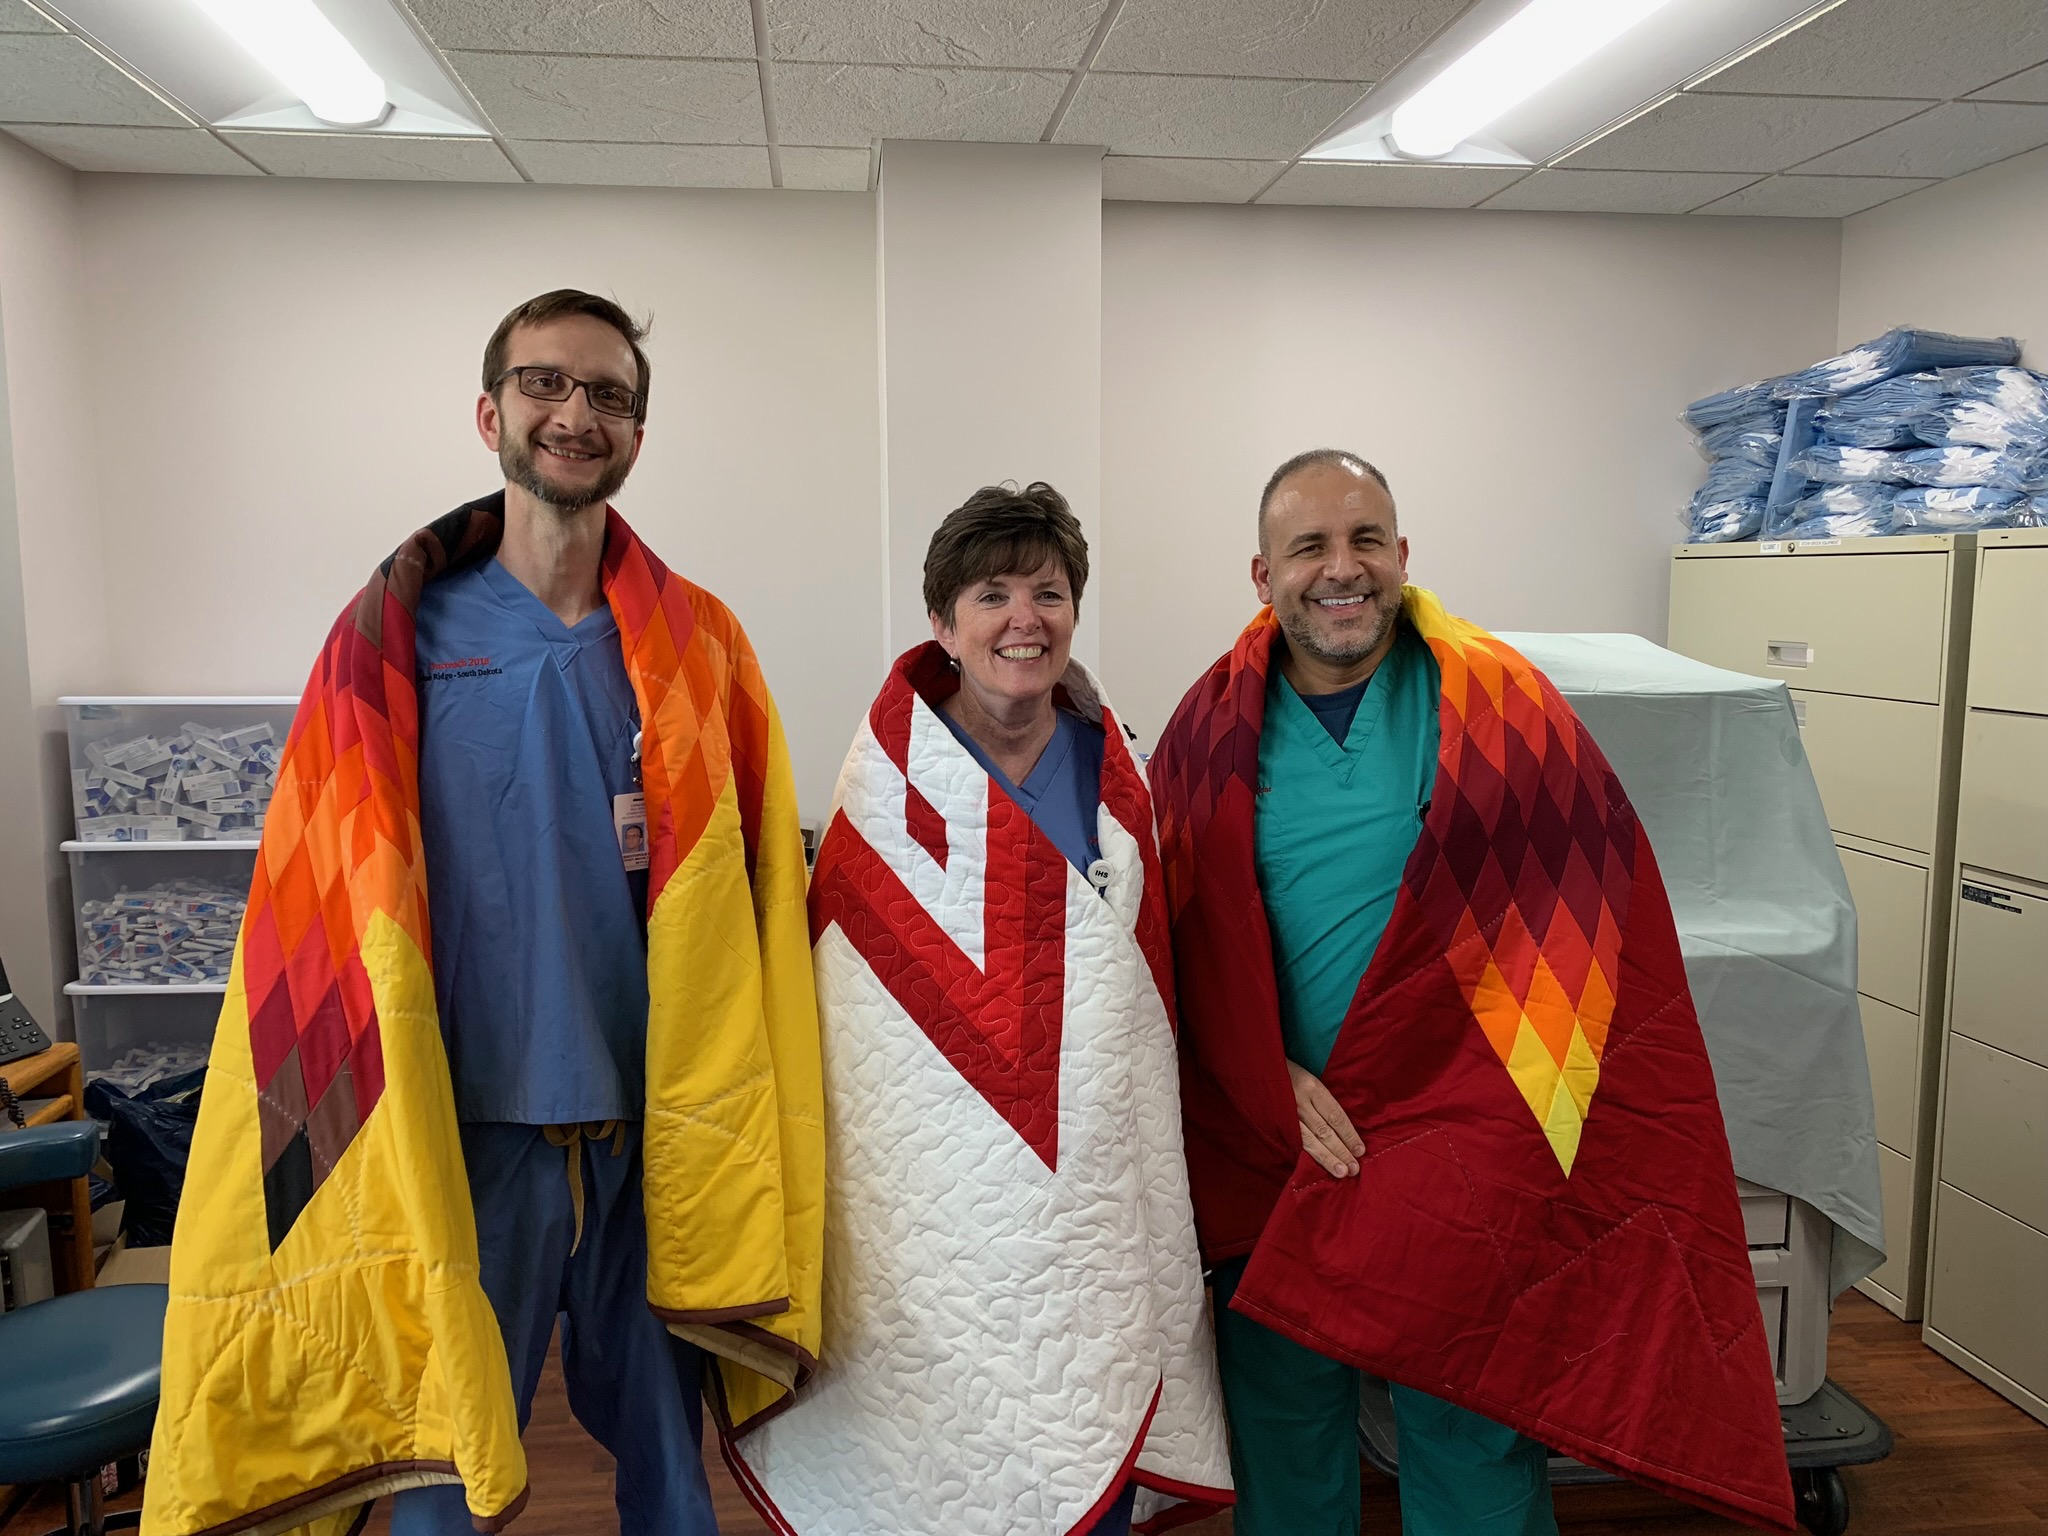 Dr. Mary Truhlar, Dean, and Dr. John Foti, Clinical Assistant Professor wearing star quilts that they received as a gift from the Pine Ridge Indian Health Services Hospital